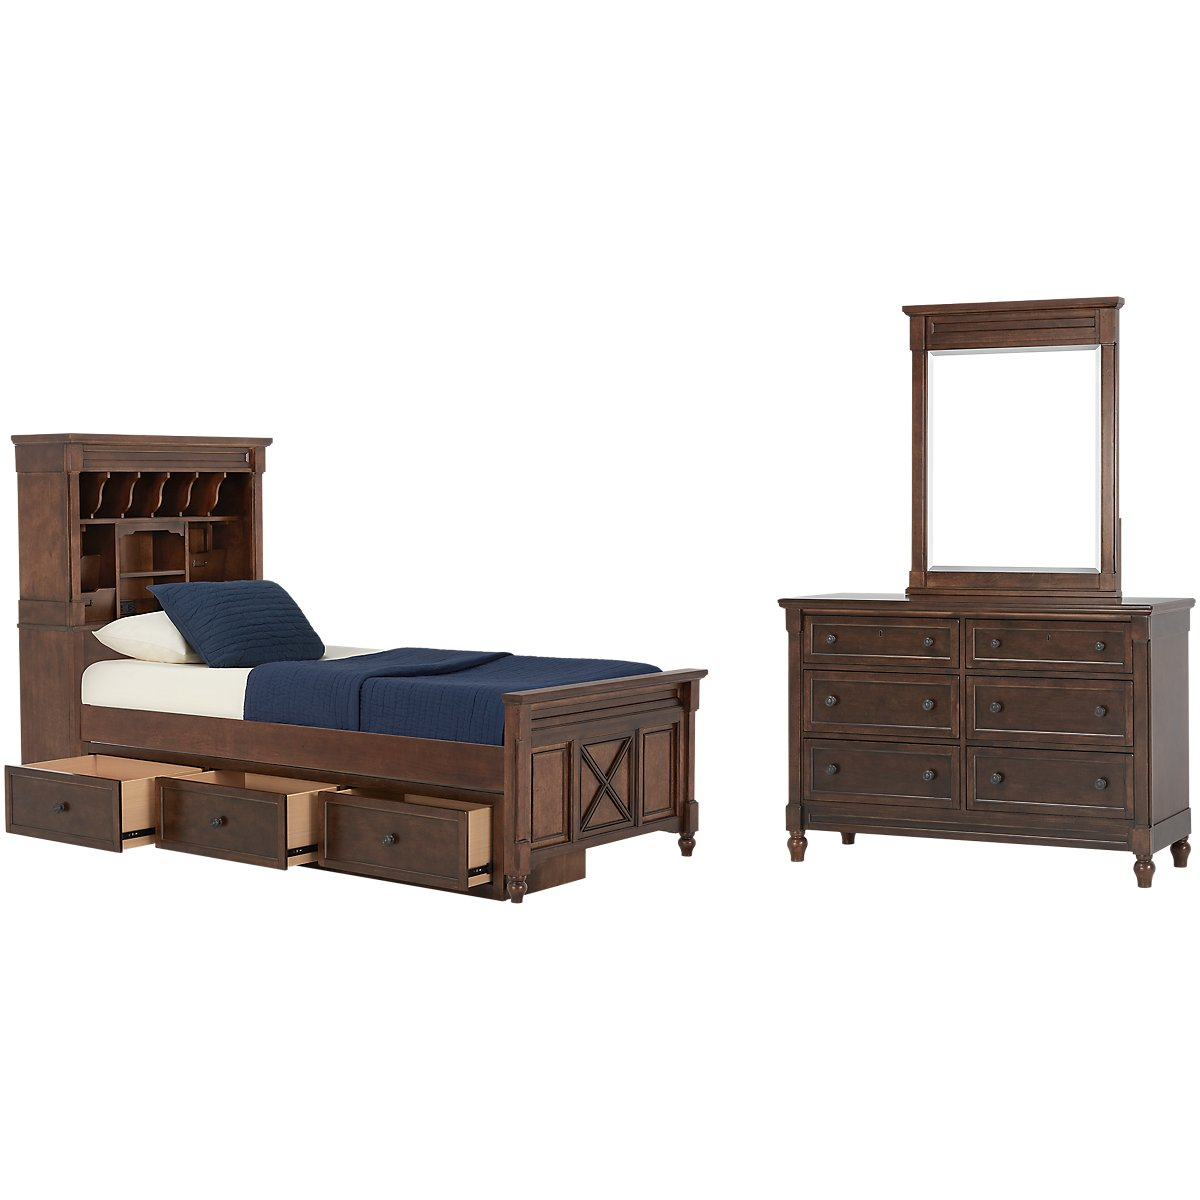 Big Sur Dark Tone Bookcase Storage Bedroom